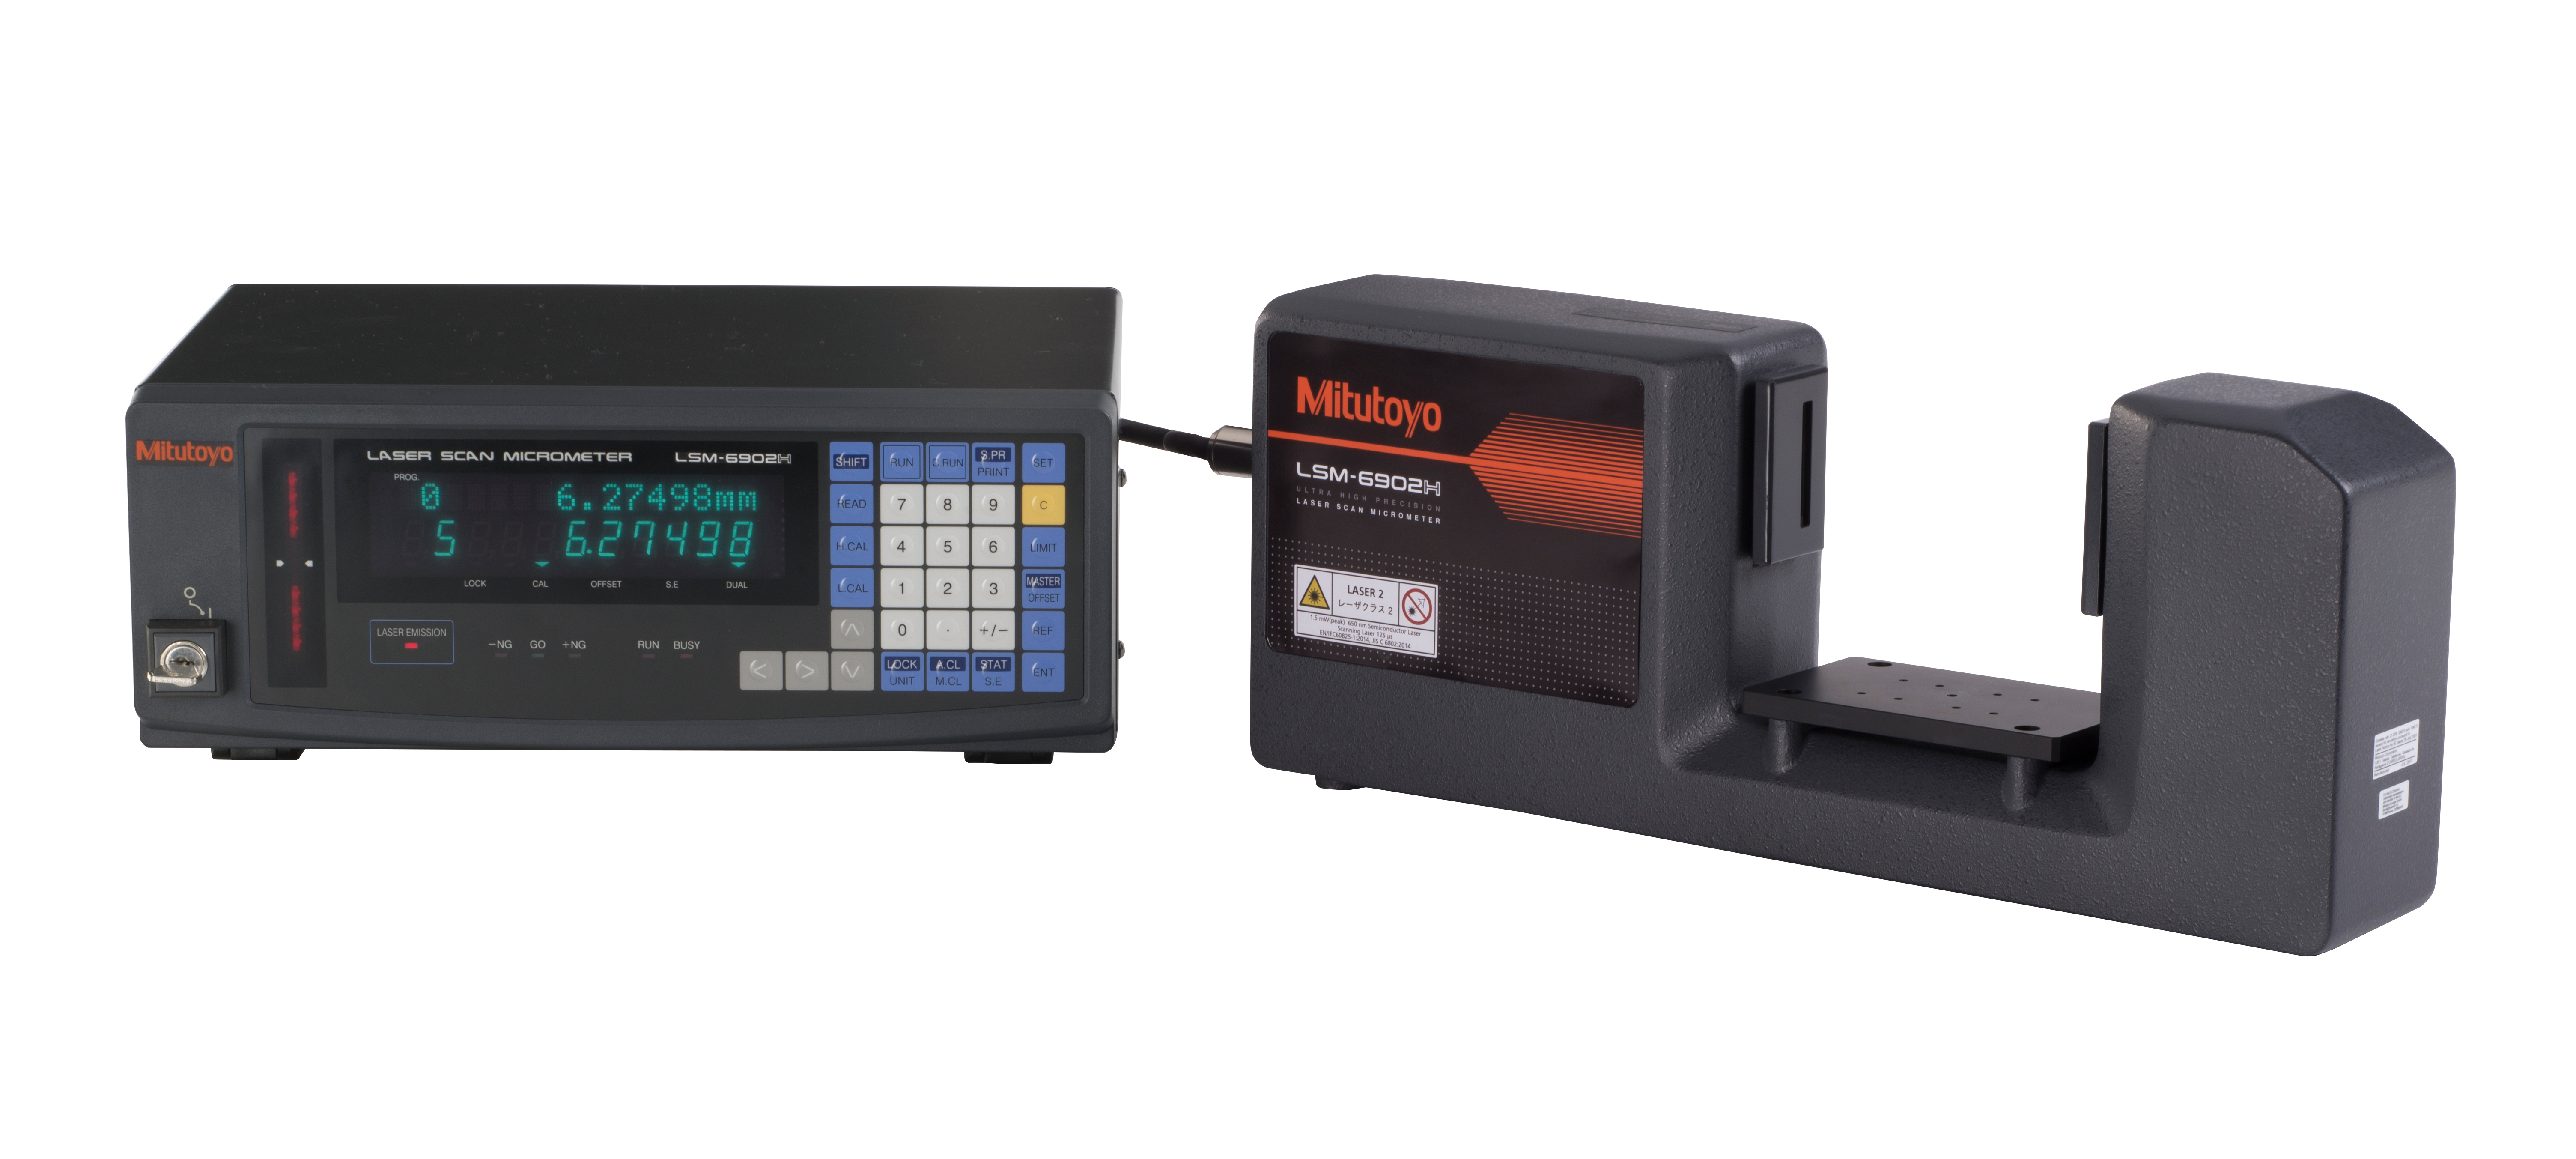 Mitutoyo America Corporation Introduces LSM-6902H Laser Scan